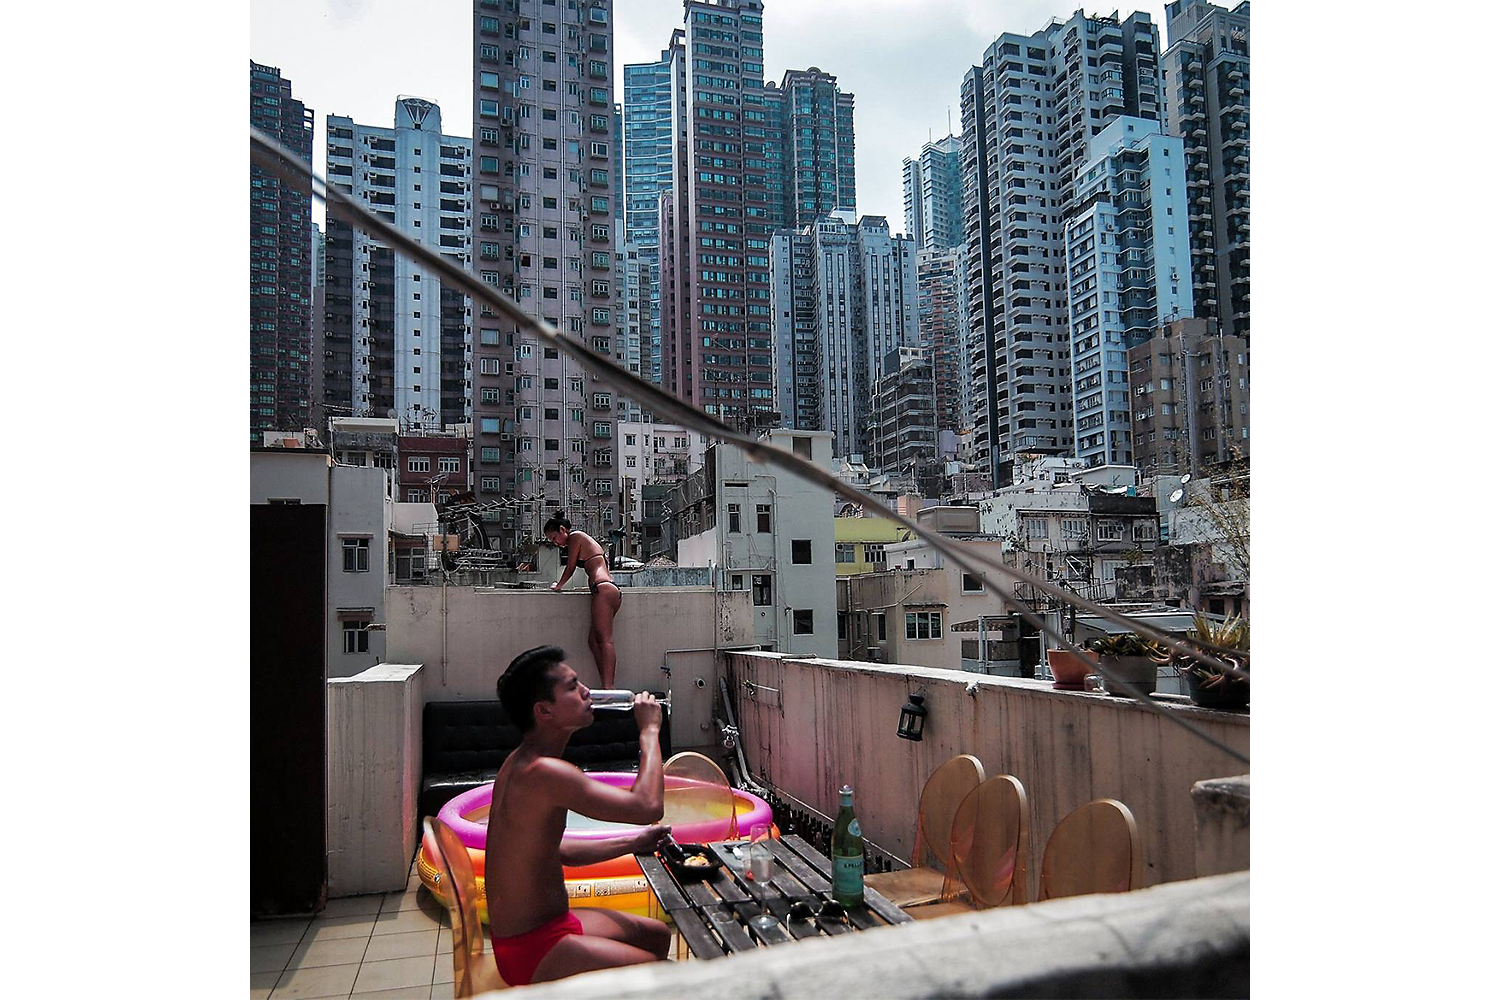 Modern apartment buildings rise in the background, as a couple soaks in the sun on the roof of one of Hong Kong's old buildings in the city's business district. Housing stock remains a problem in Hong Kong, where a large population lives in cramped quarters and the city's real estate remains among the most expensive in the world. Photo by Billy H.C. Kwok @billyhckwok